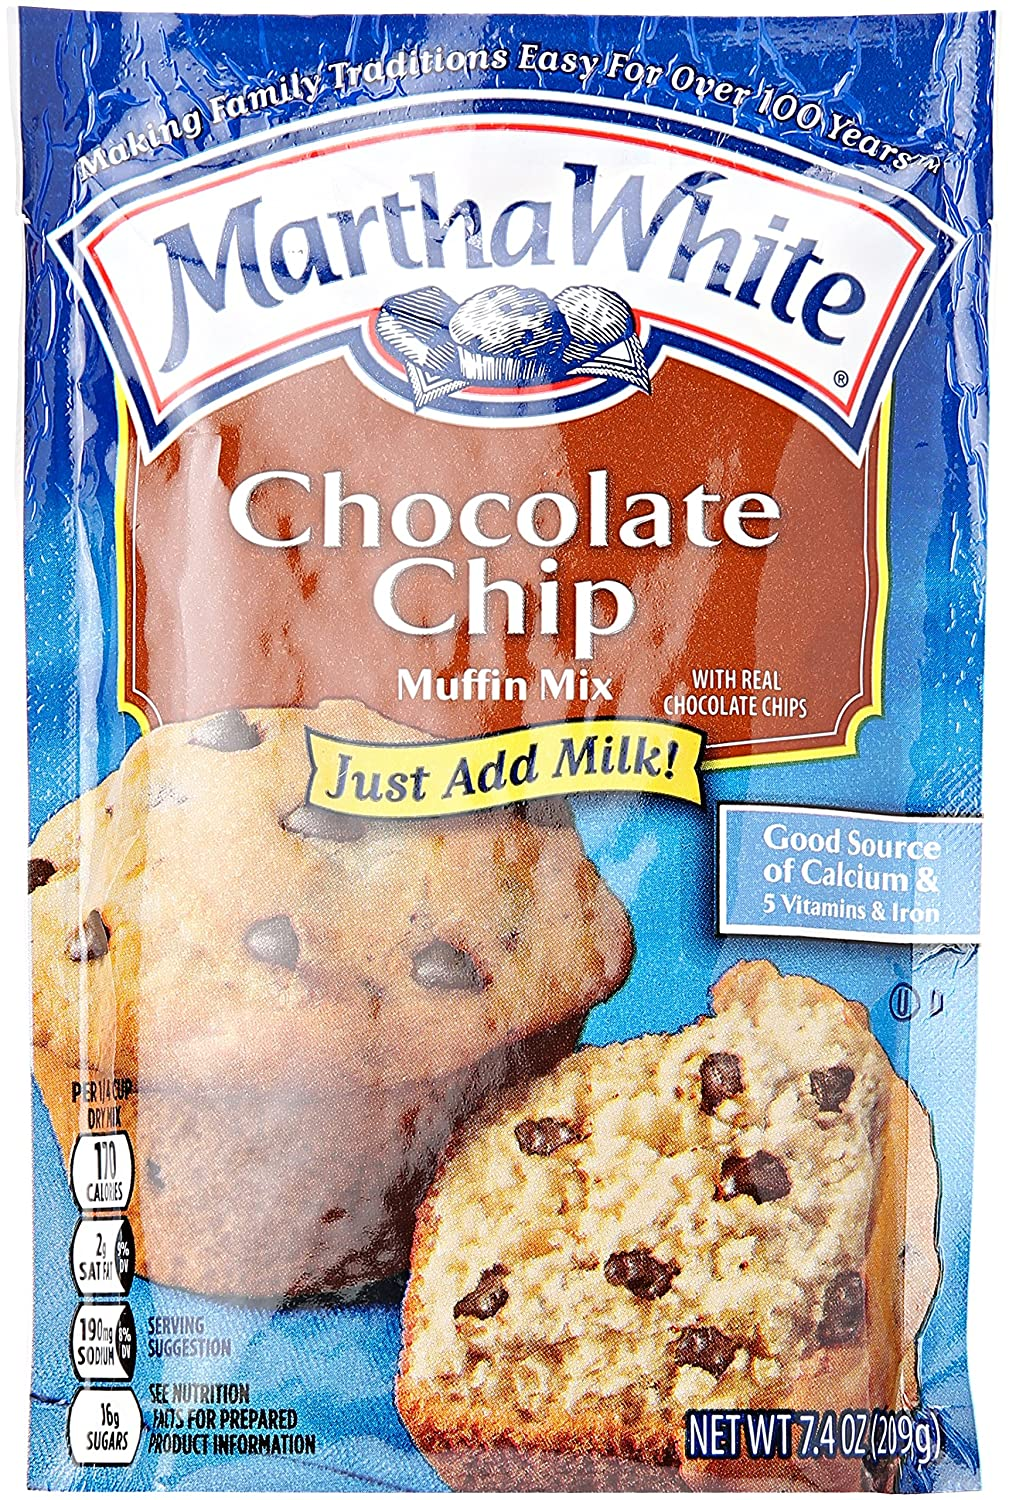 Smuckers Martha White Chocolate Chip 7.4 Muffin Mix Over item handling Surprise price oz